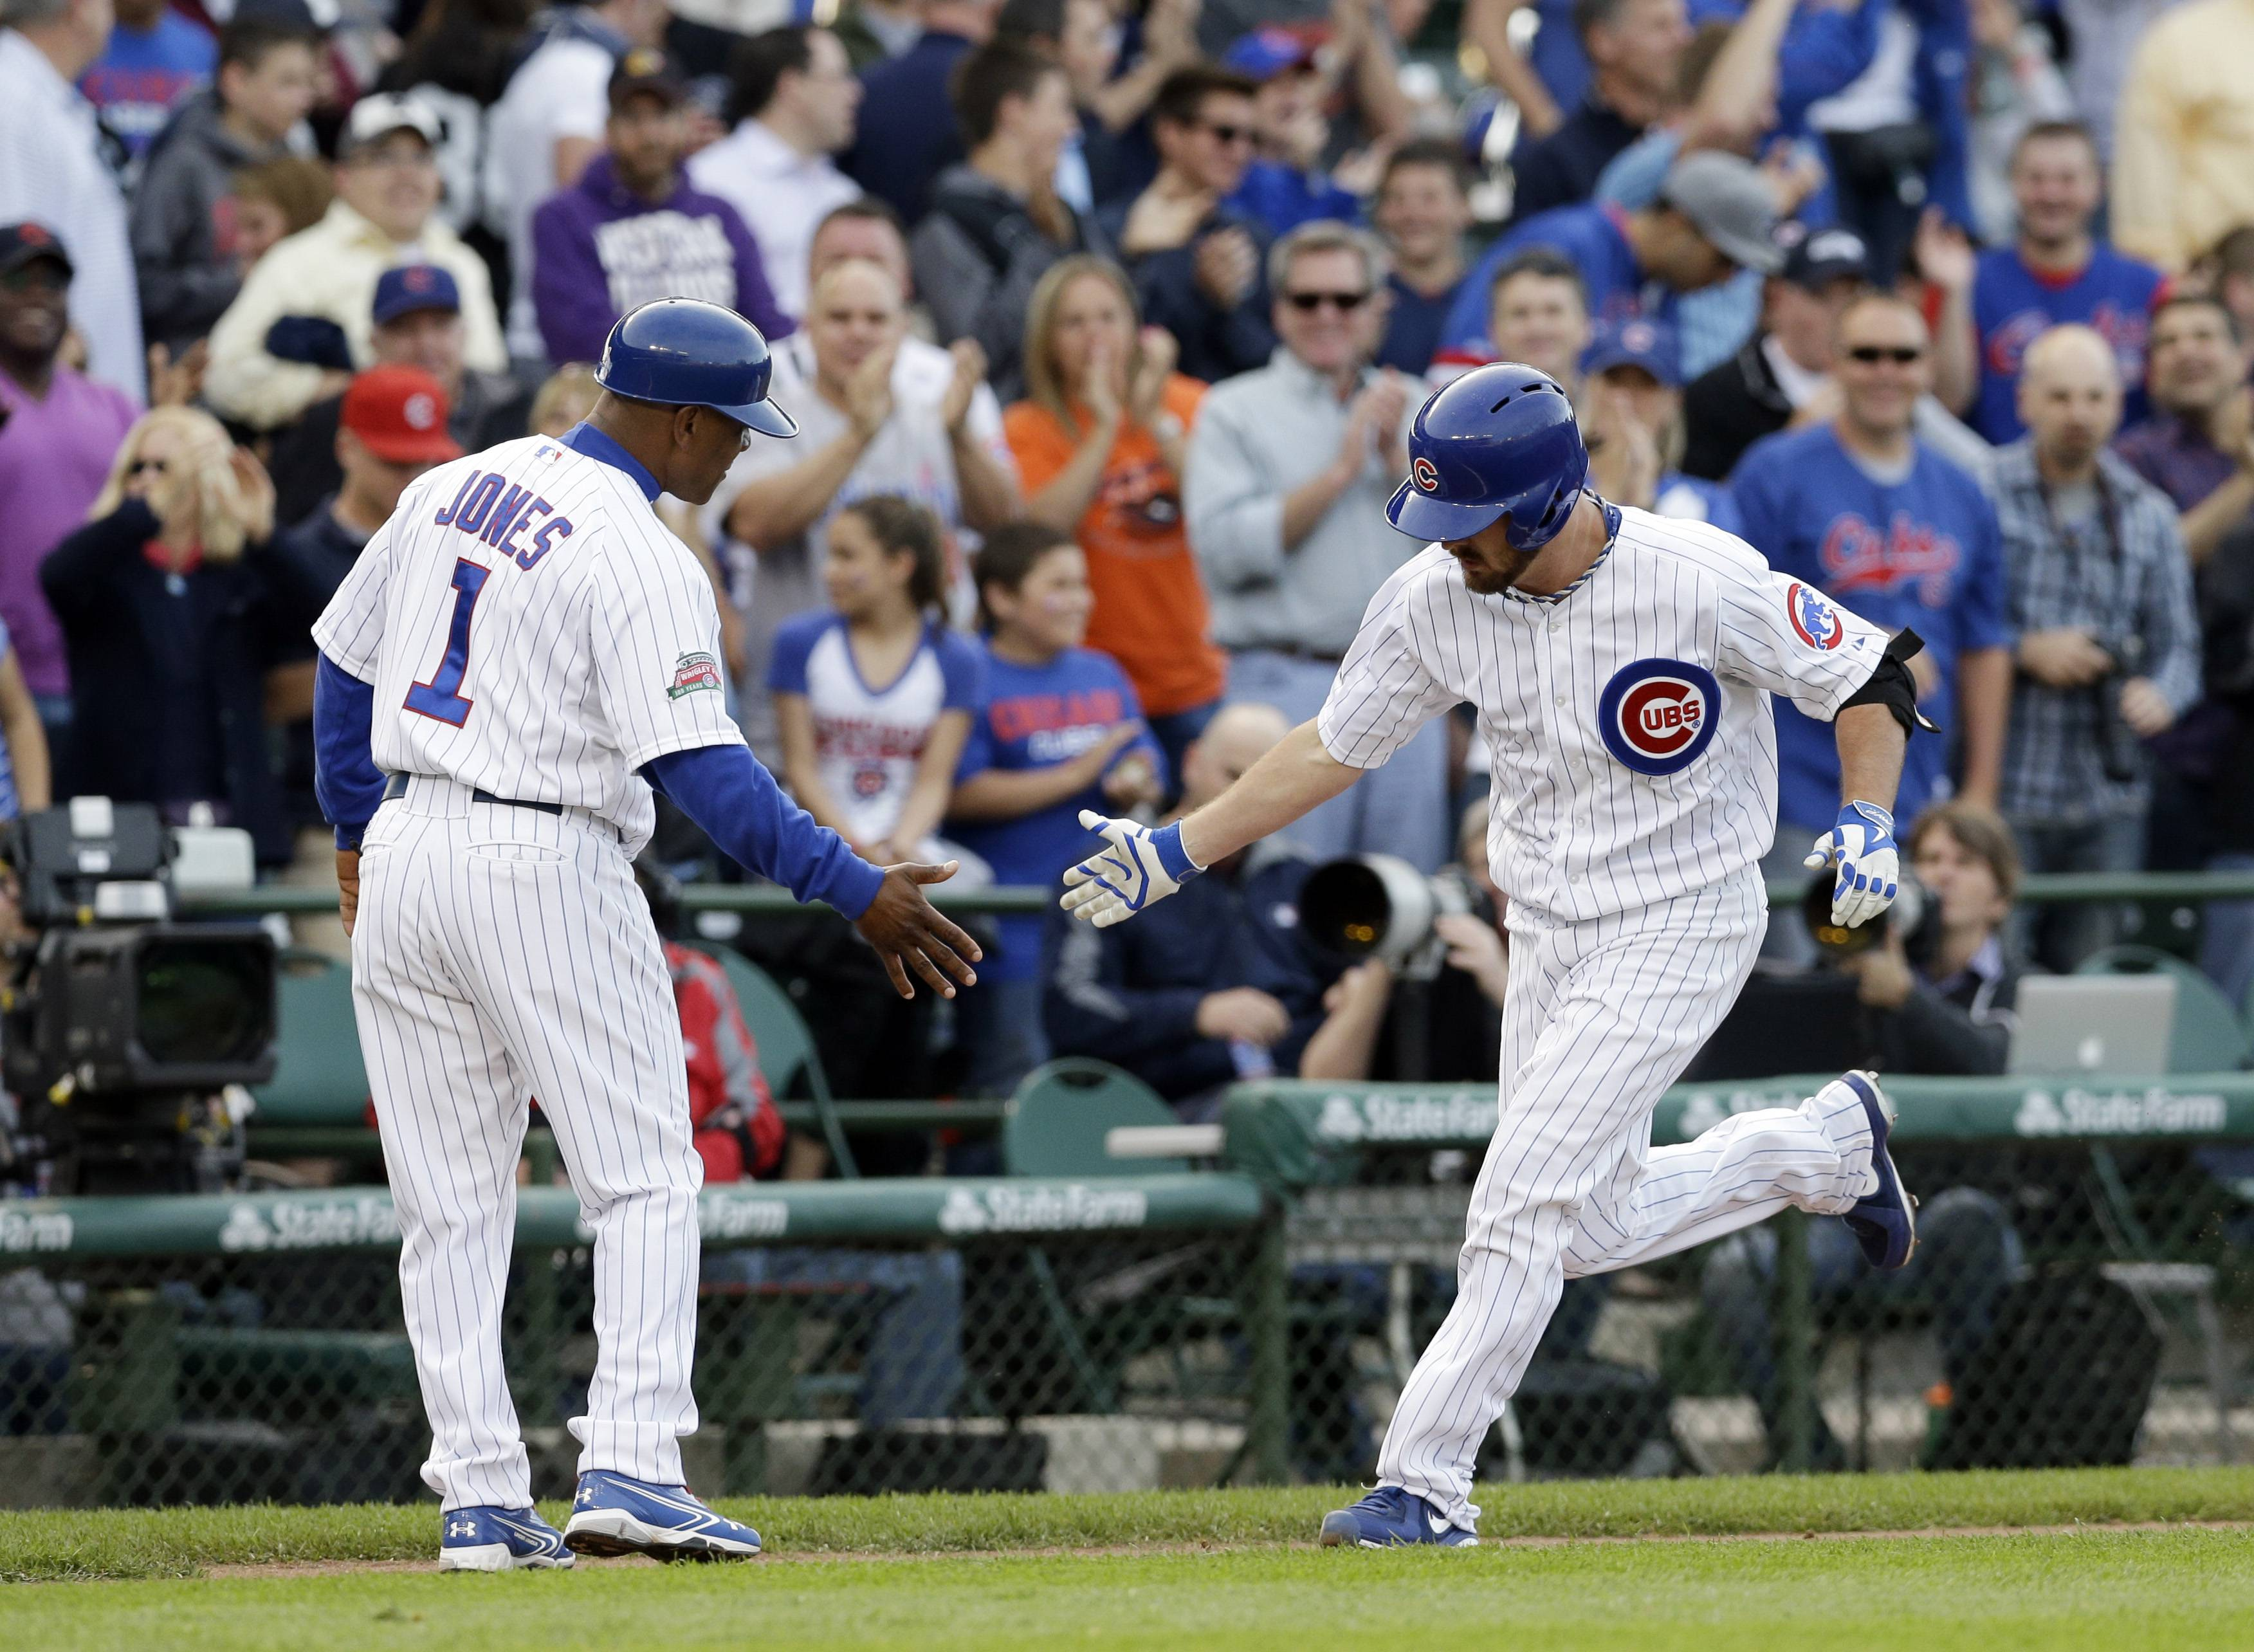 Cubs starter Travis Wood, right, celebrates with third base coach Gary Jones after hitting a 2-run homer in the second inning Thursday against the Mets at Wrigley Field.